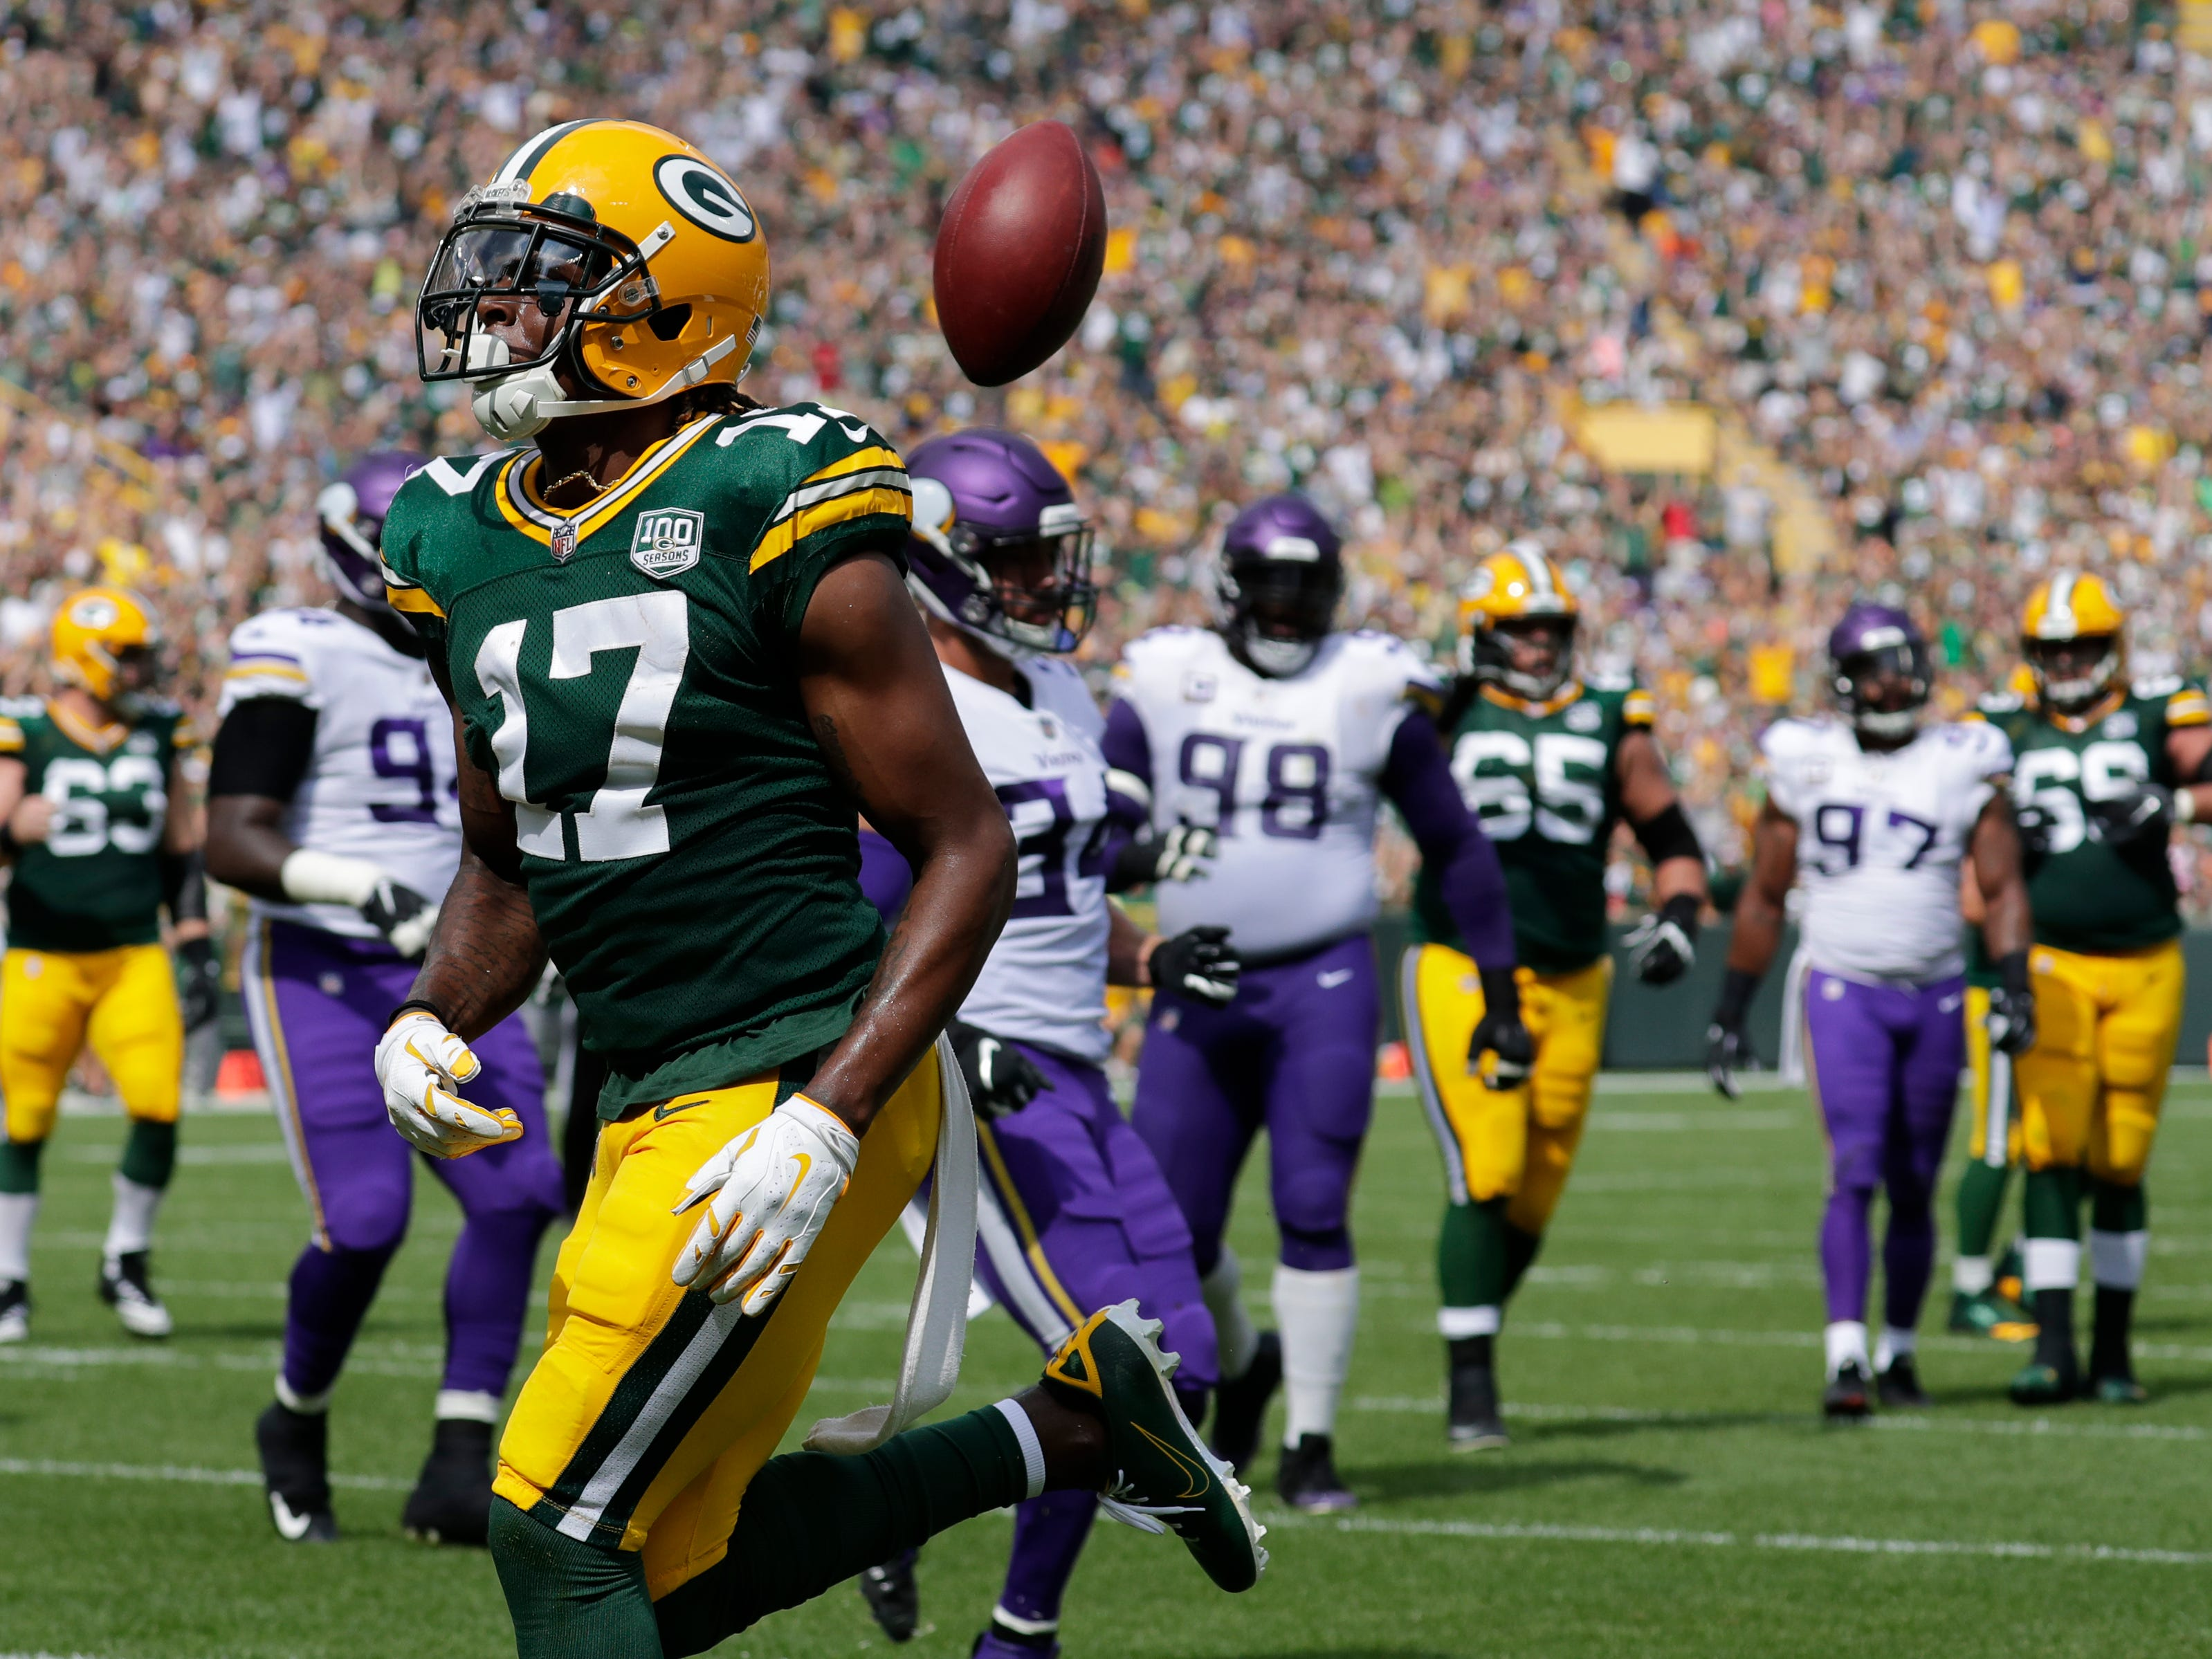 Green Bay Packers wide receiver Davante Adams (17) scores a touchdown in the second quarter against the Minnesota Vikings during their football game Sunday, Sept. 16, 2018, at Lambeau Field in Green Bay, Wis.